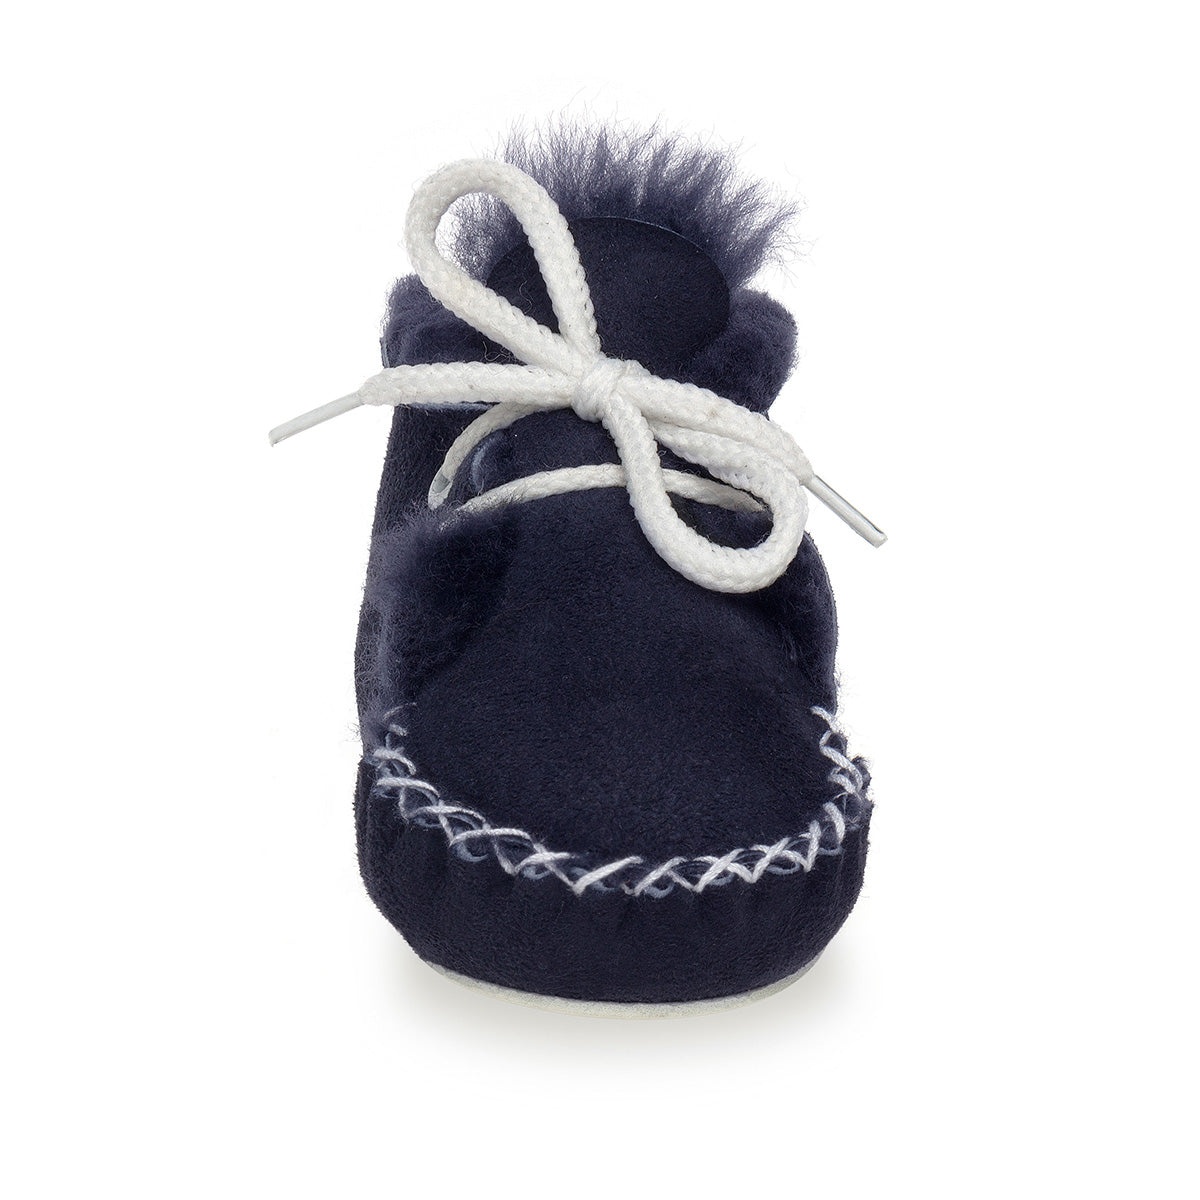 Lupe Hand-Stitched Sheepskin Baby Booties - Navy